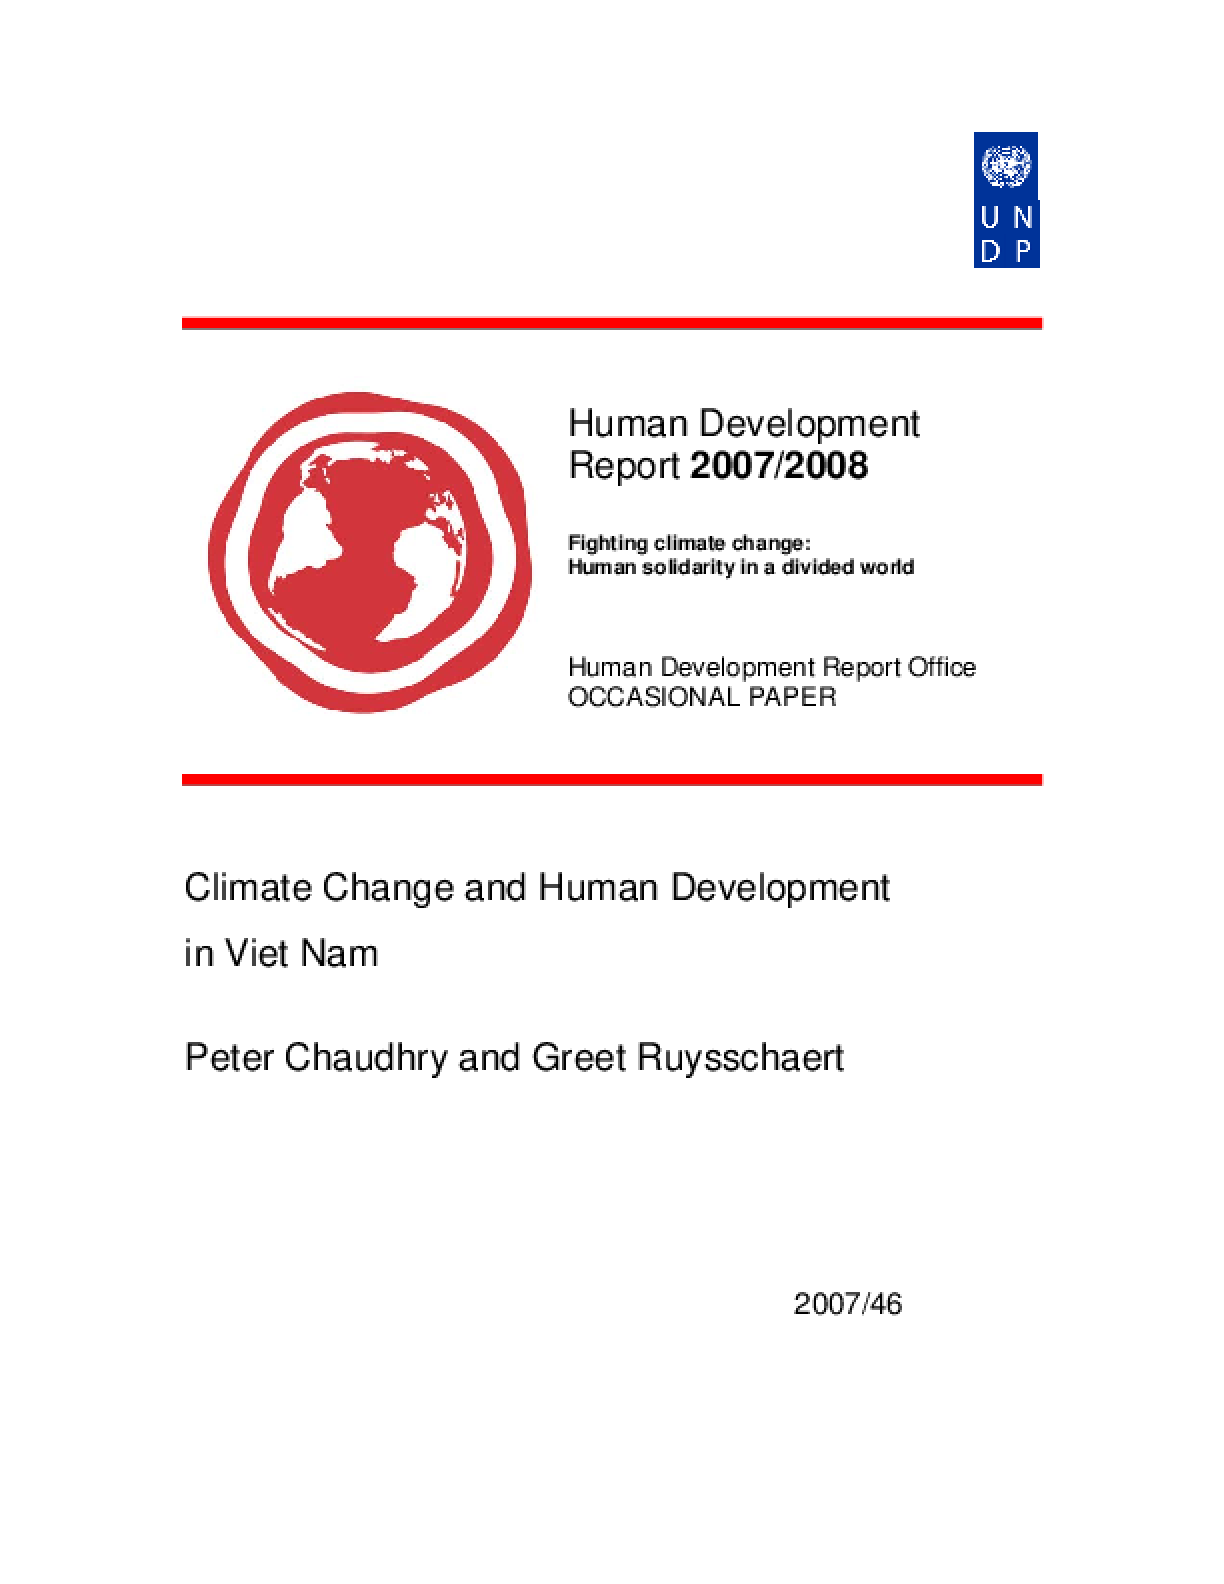 Climate Change and Human Development in Viet Nam: A case study for how change happens